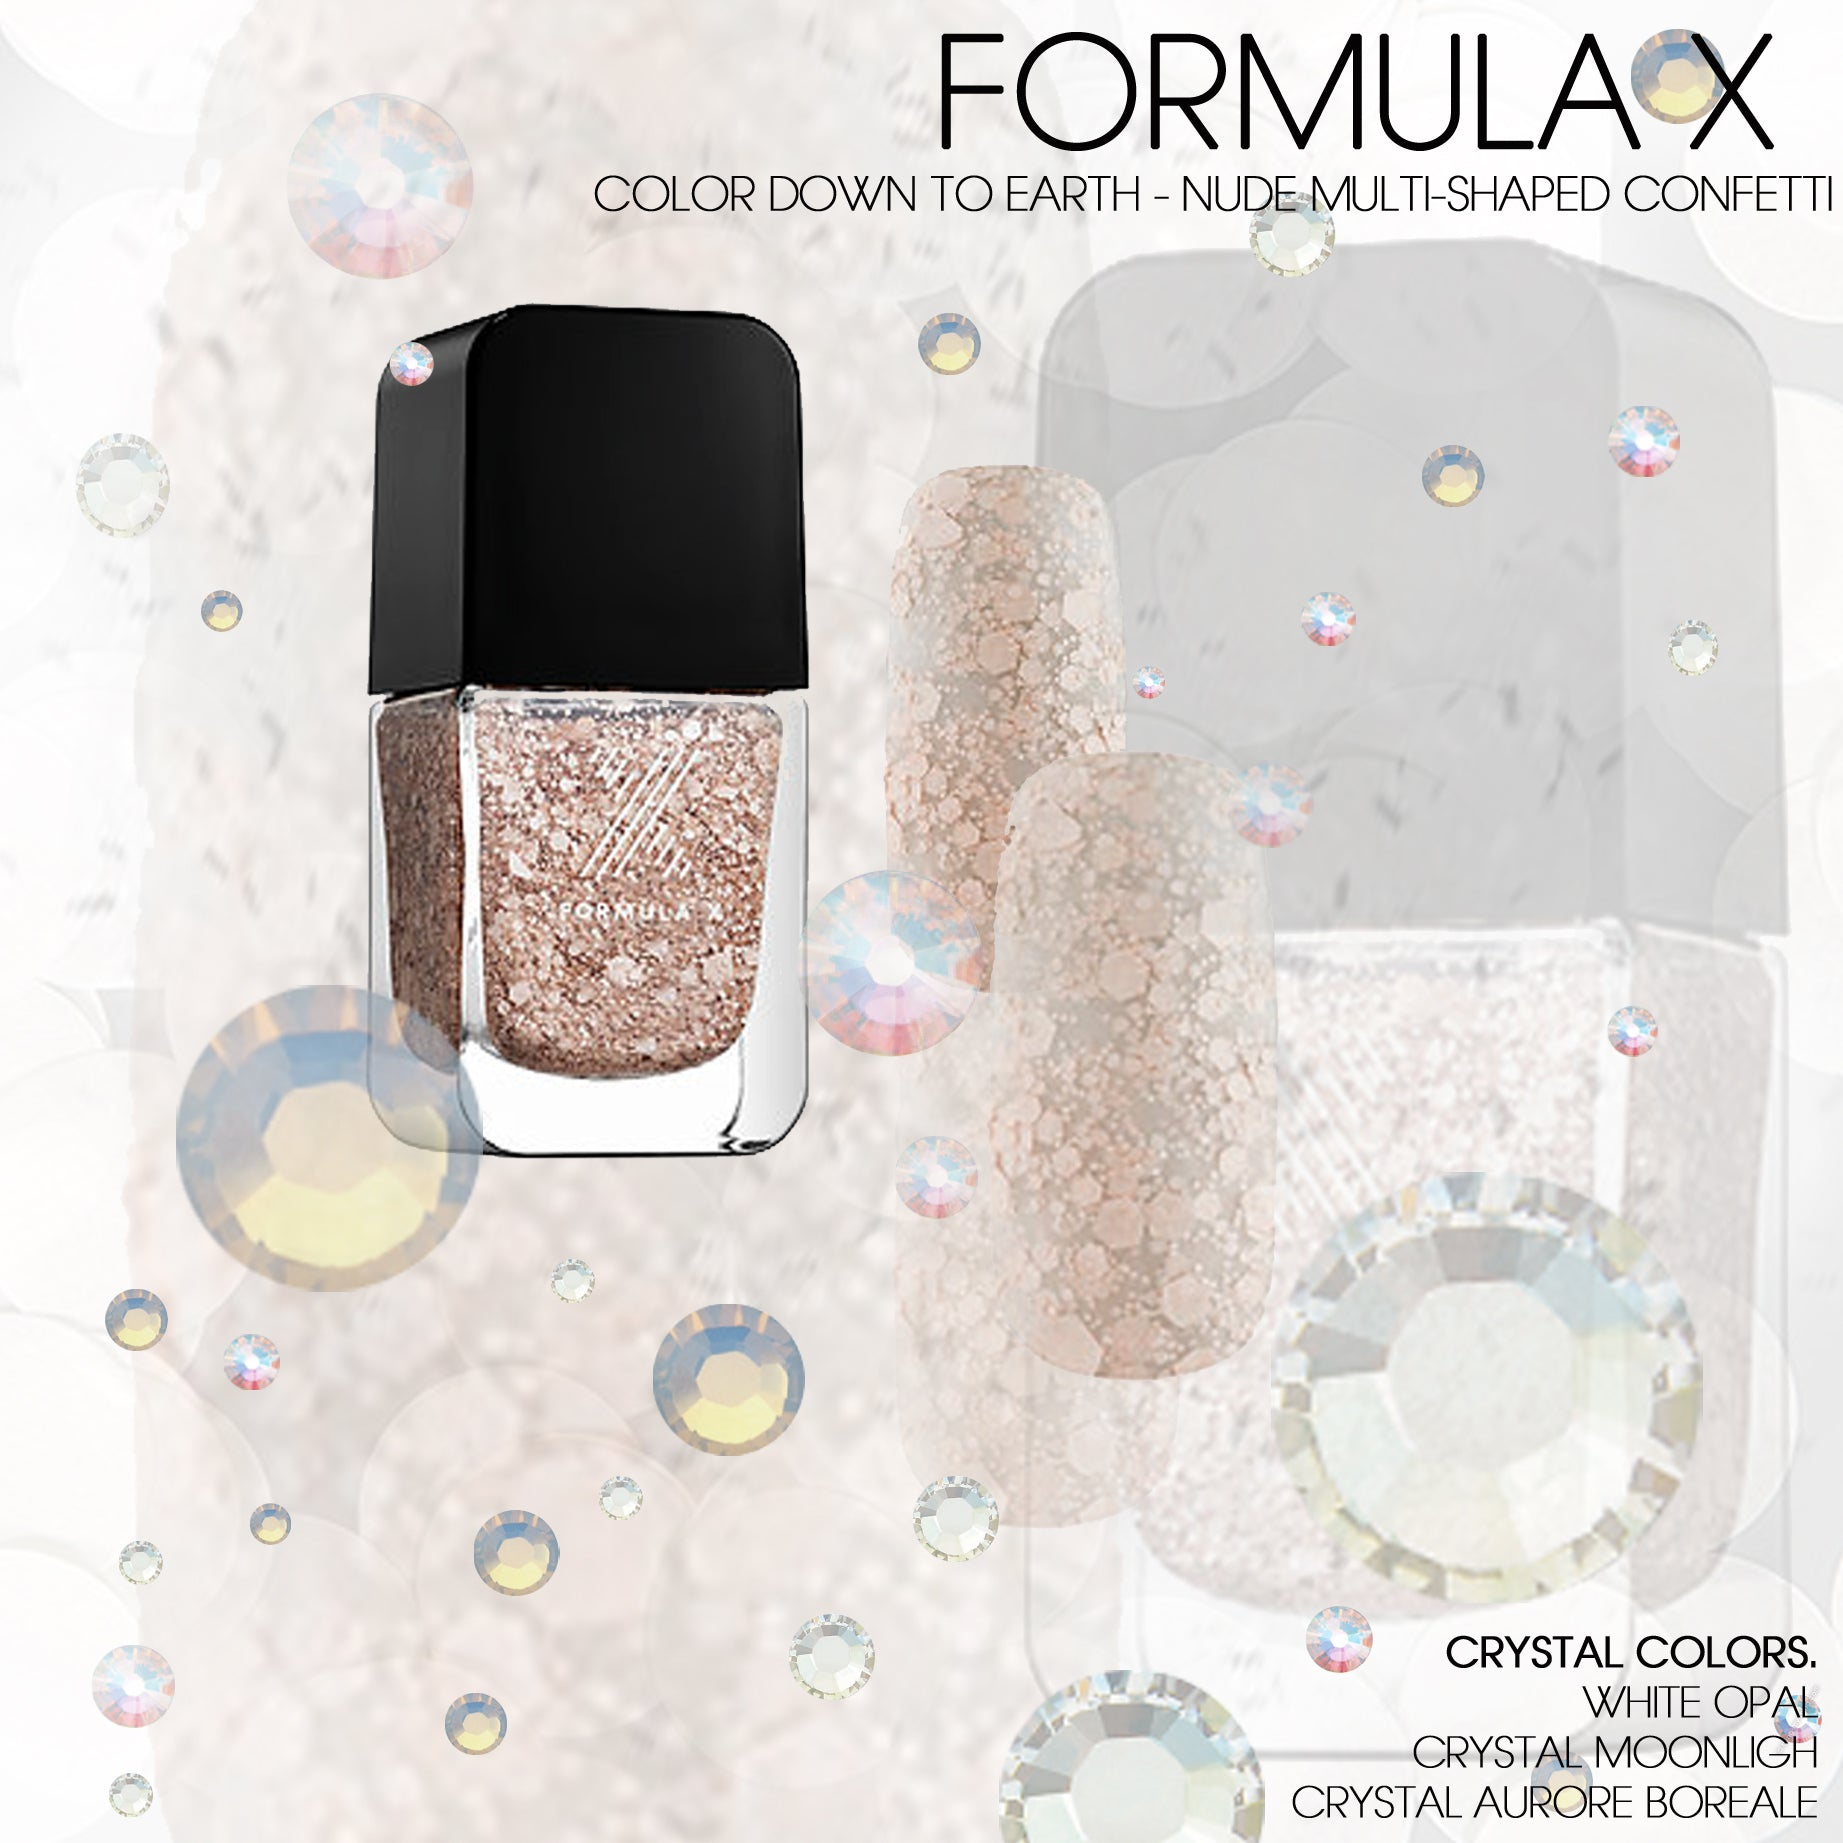 Crystallized Beauty: Best Beauty Items to Match Your Fave Crystals!